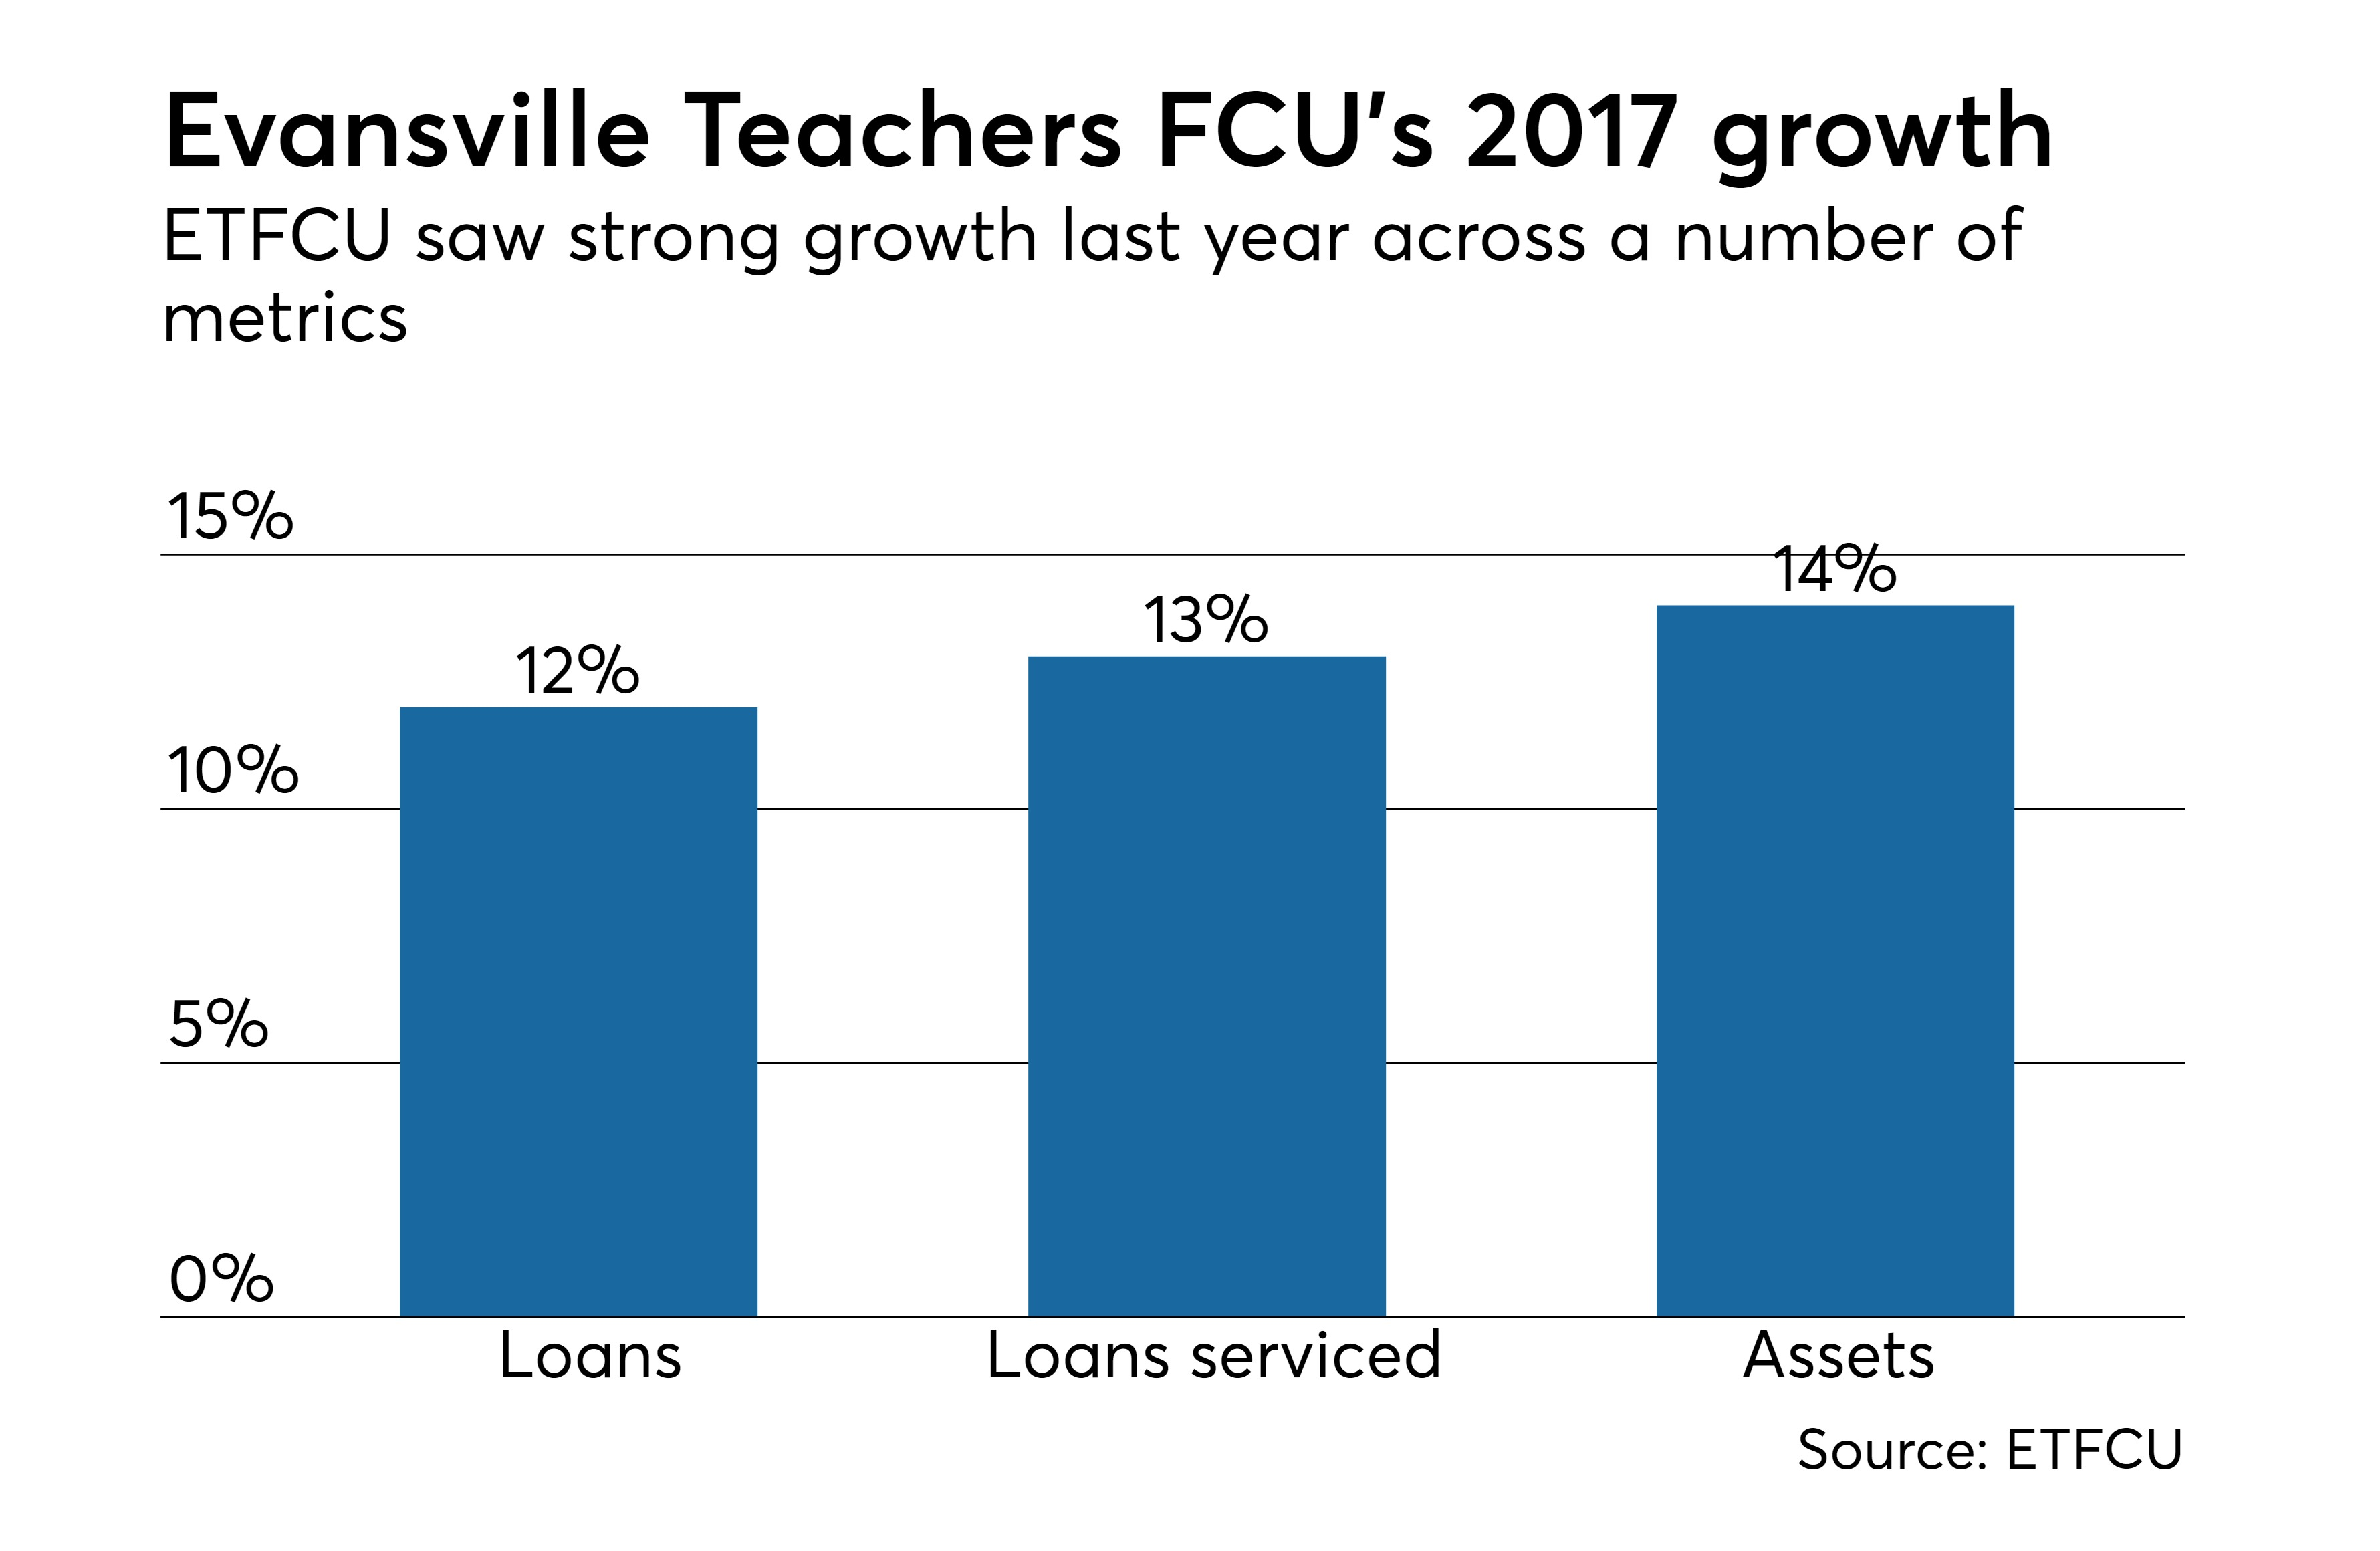 https://assets.sourcemedia.com/d2/19/9527aacc484a919e3b7ad7a92506/evansville-teachers-fcu-2017-growth-cuj-032018.jpeg